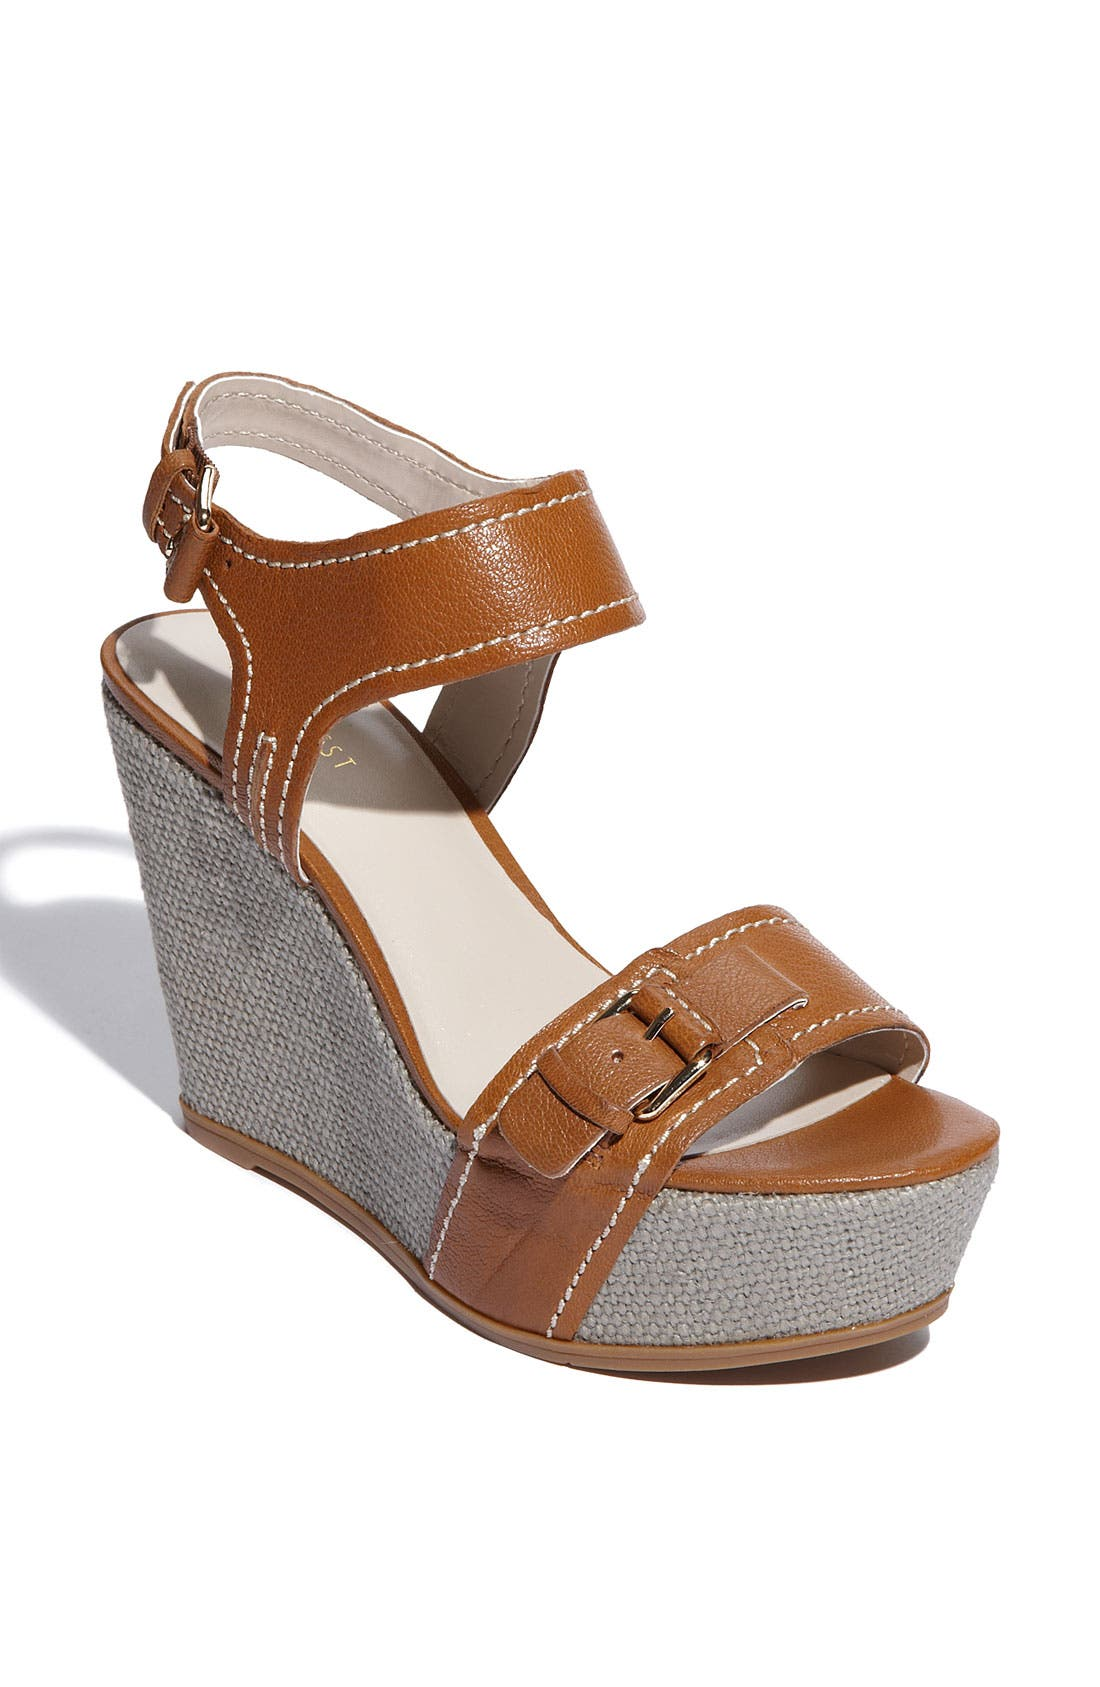 Alternate Image 1 Selected - Nine West 'Leoness' Wedge Sandal